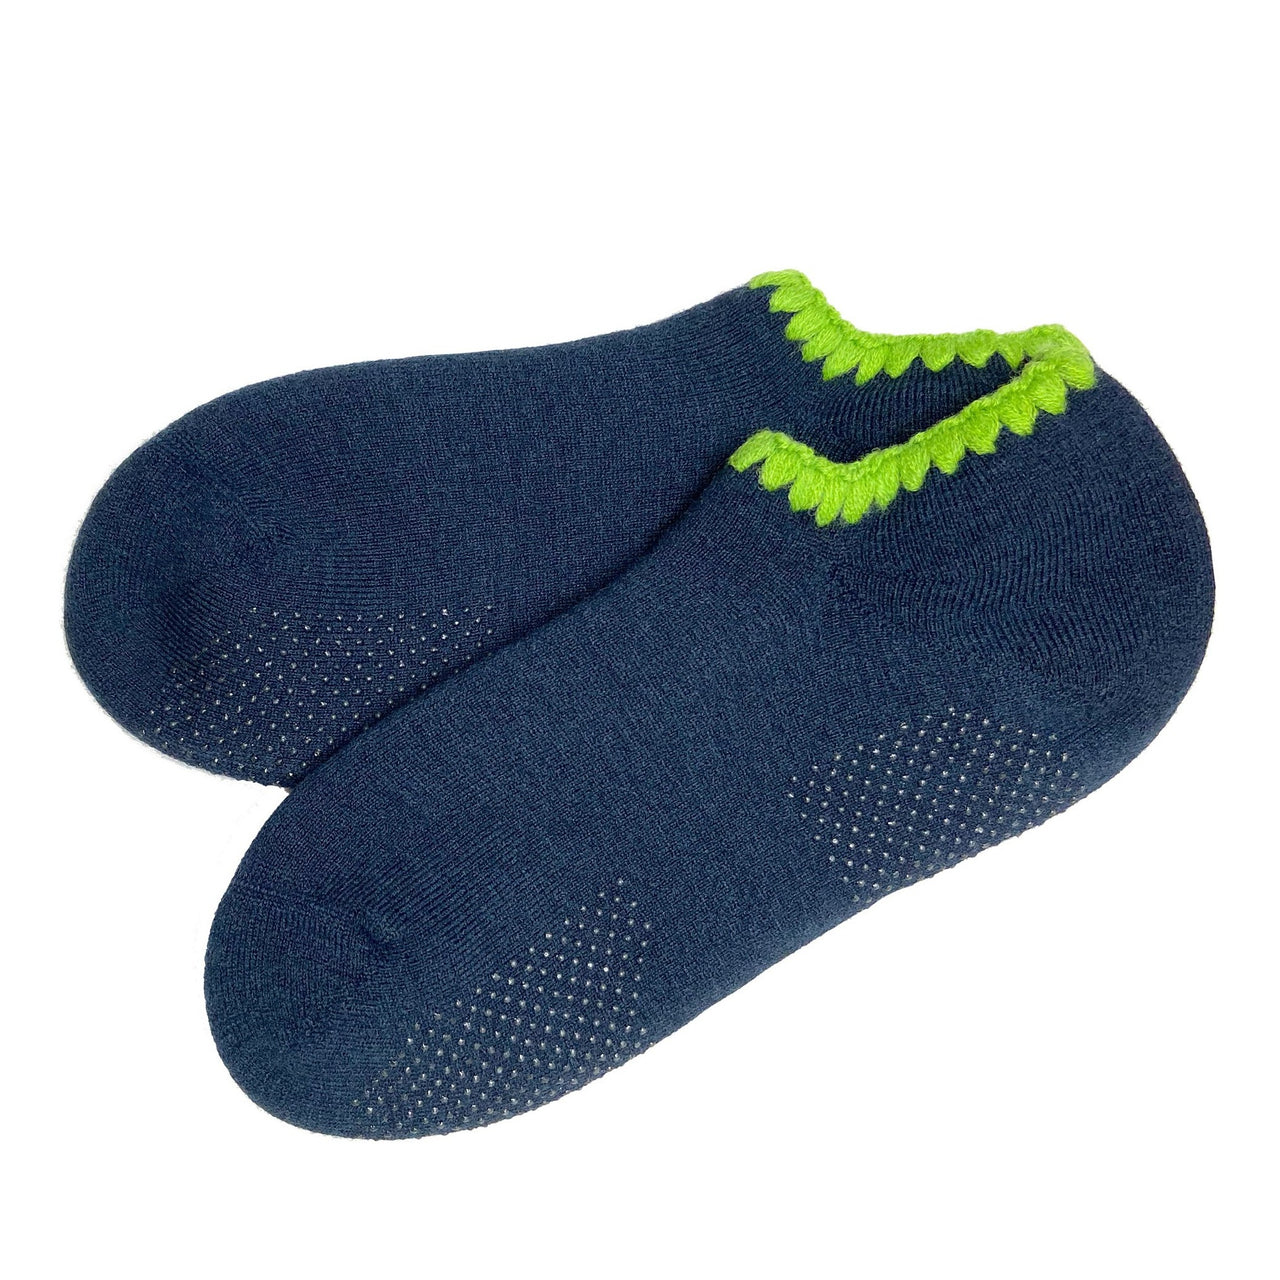 CHERRYSTONE® Slipper Socks | Seattle Limited Edition with Grips for Men | Midnight Blue - CHERRYSTONE